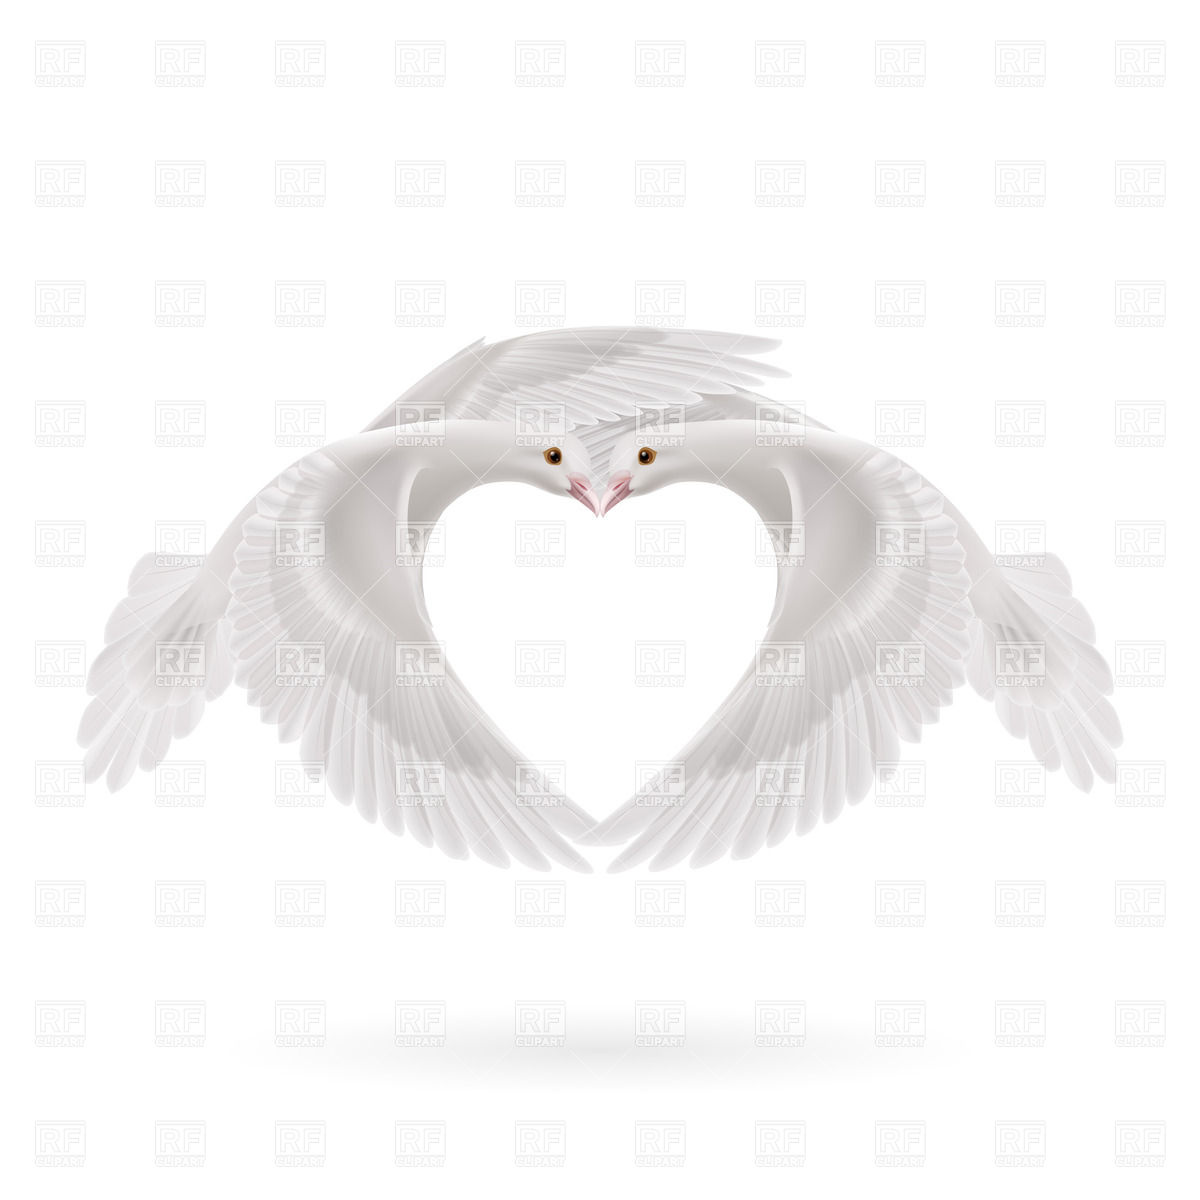 1200x1200 White Doves Makes The Shape Of The Heart Of Wings Vector Image